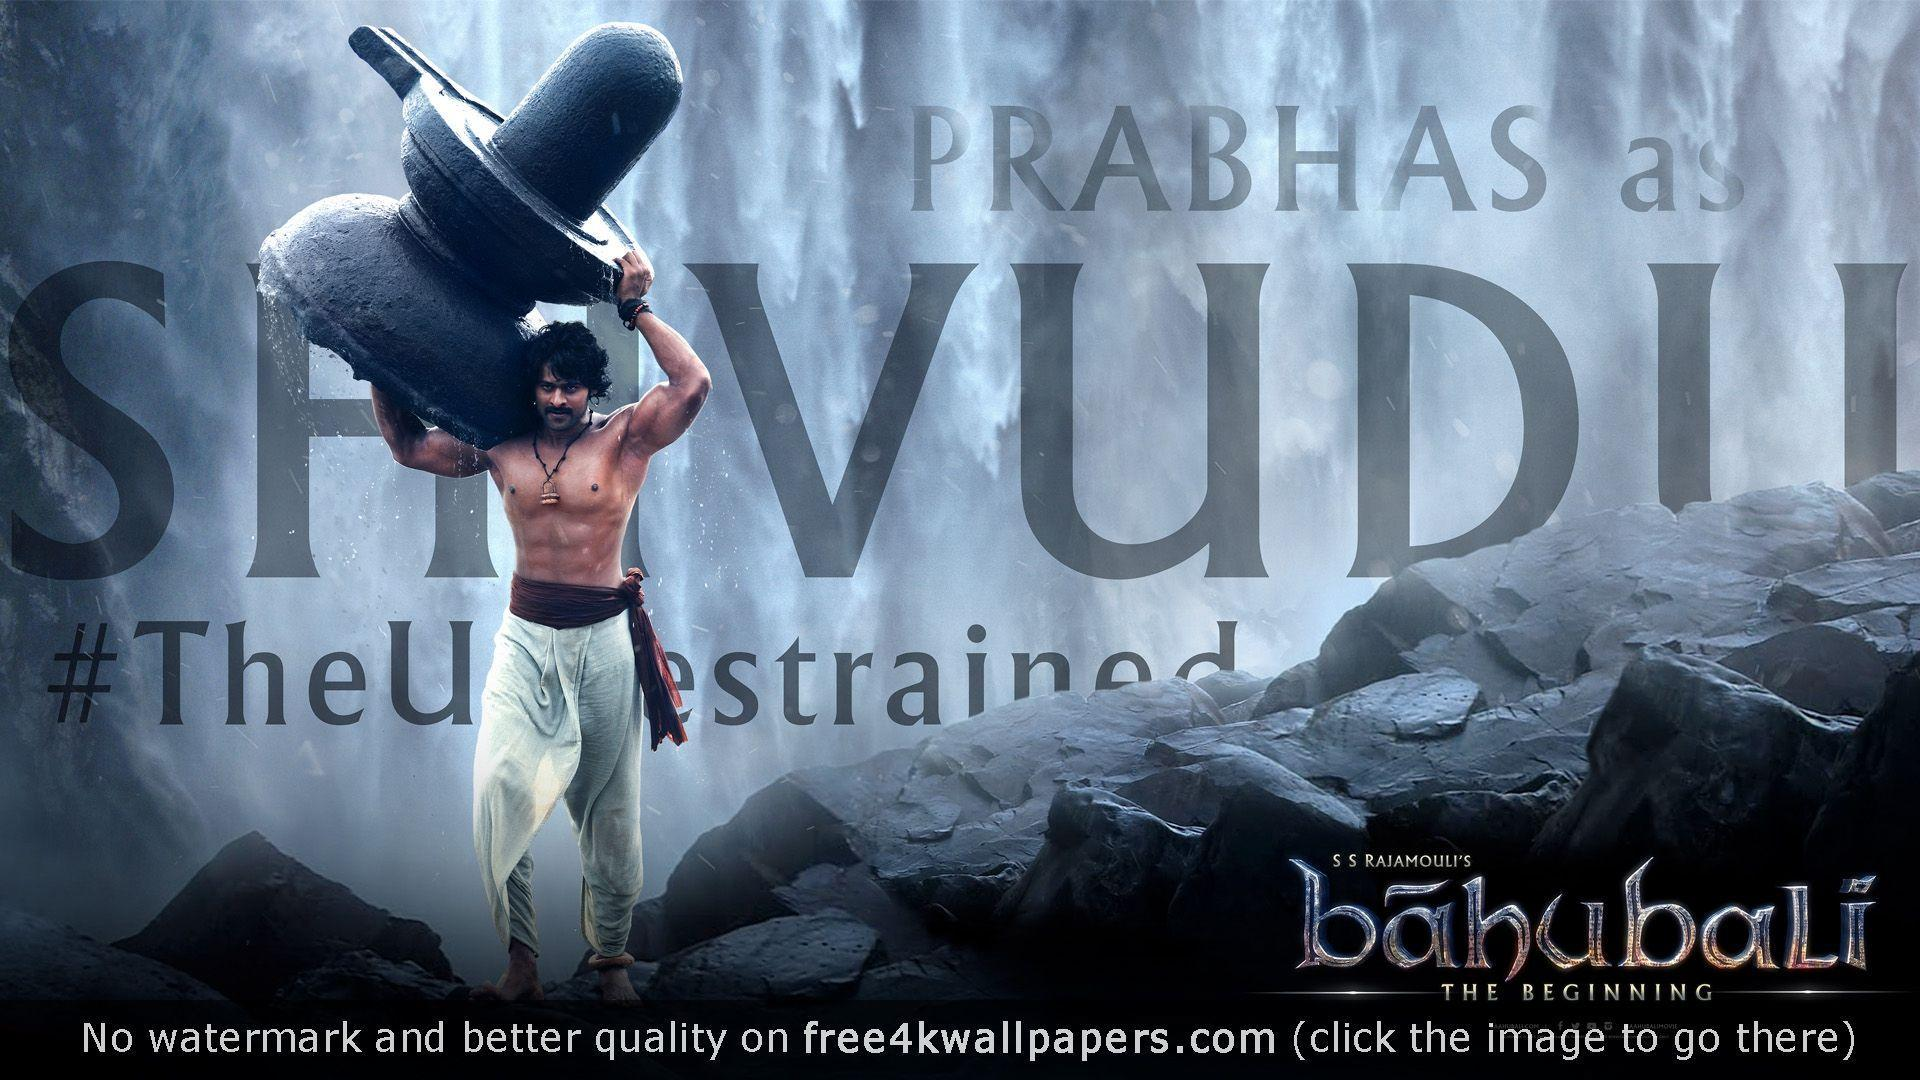 bahubali wallpapers, photos and desktop backgrounds up to 8K ...